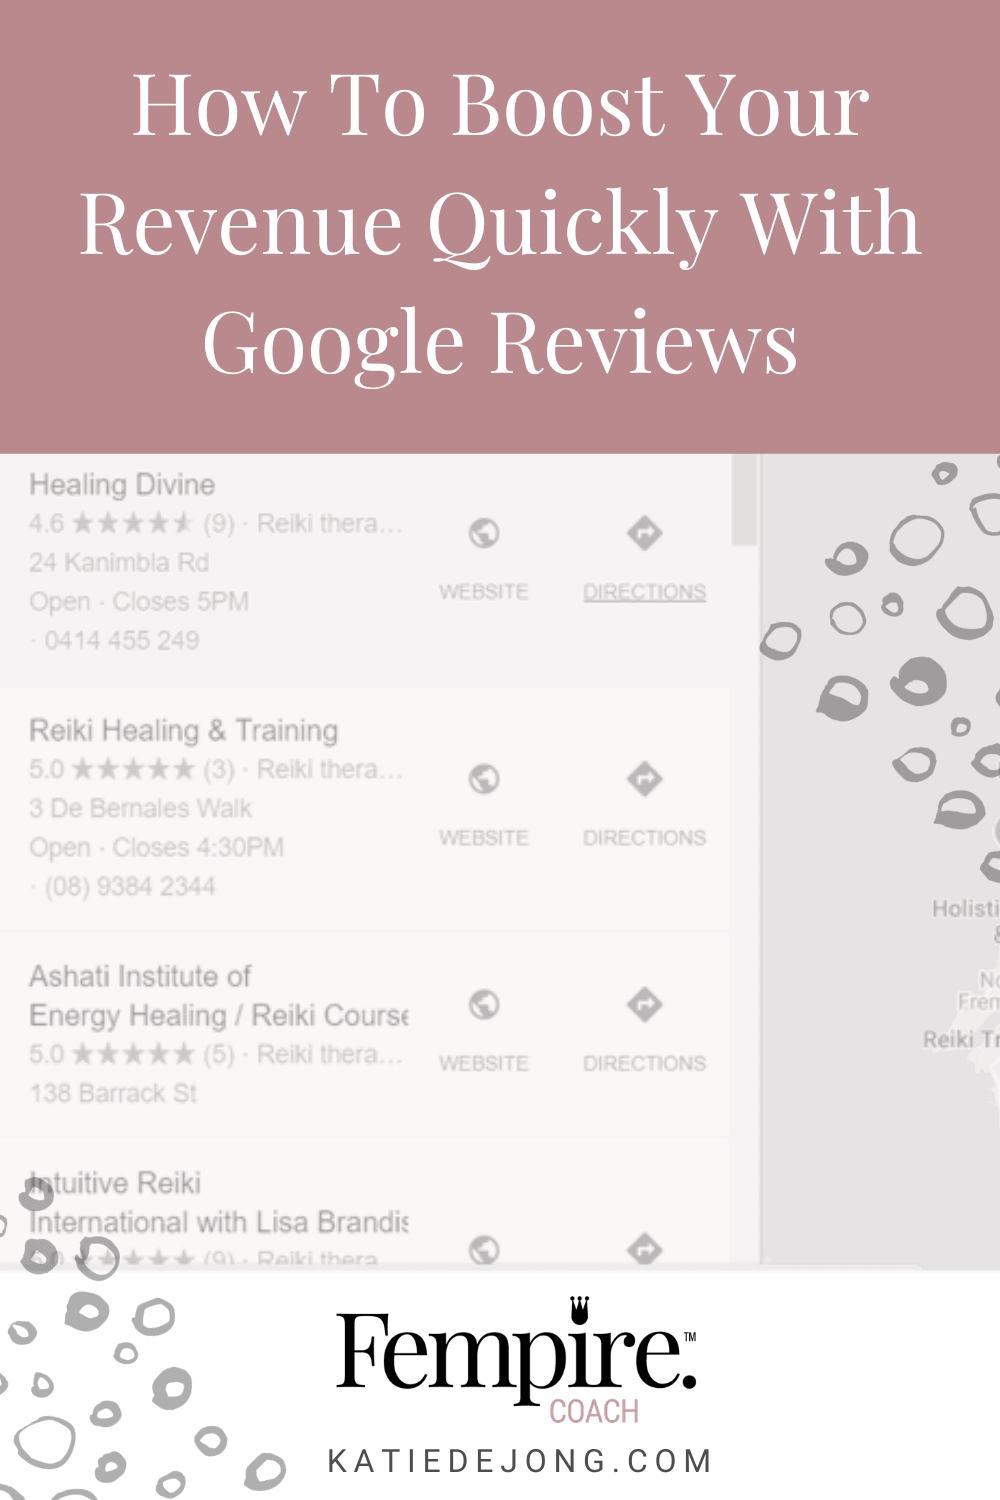 Google reviews are an easy way to get ranked highly in Google search results, above paid ads and SEO optimised sites. Discover how to use Google reviews to your advantage in this article!  #SEO #Google #GoogleAds #GoogleReviews #DigitalMarketing #Entrepreneur #Fempire #ladyboss #SEO #Google #GoogleAds #GoogleReviews #DigitalMarketing #Entrepreneur #Fempire #ladyboss